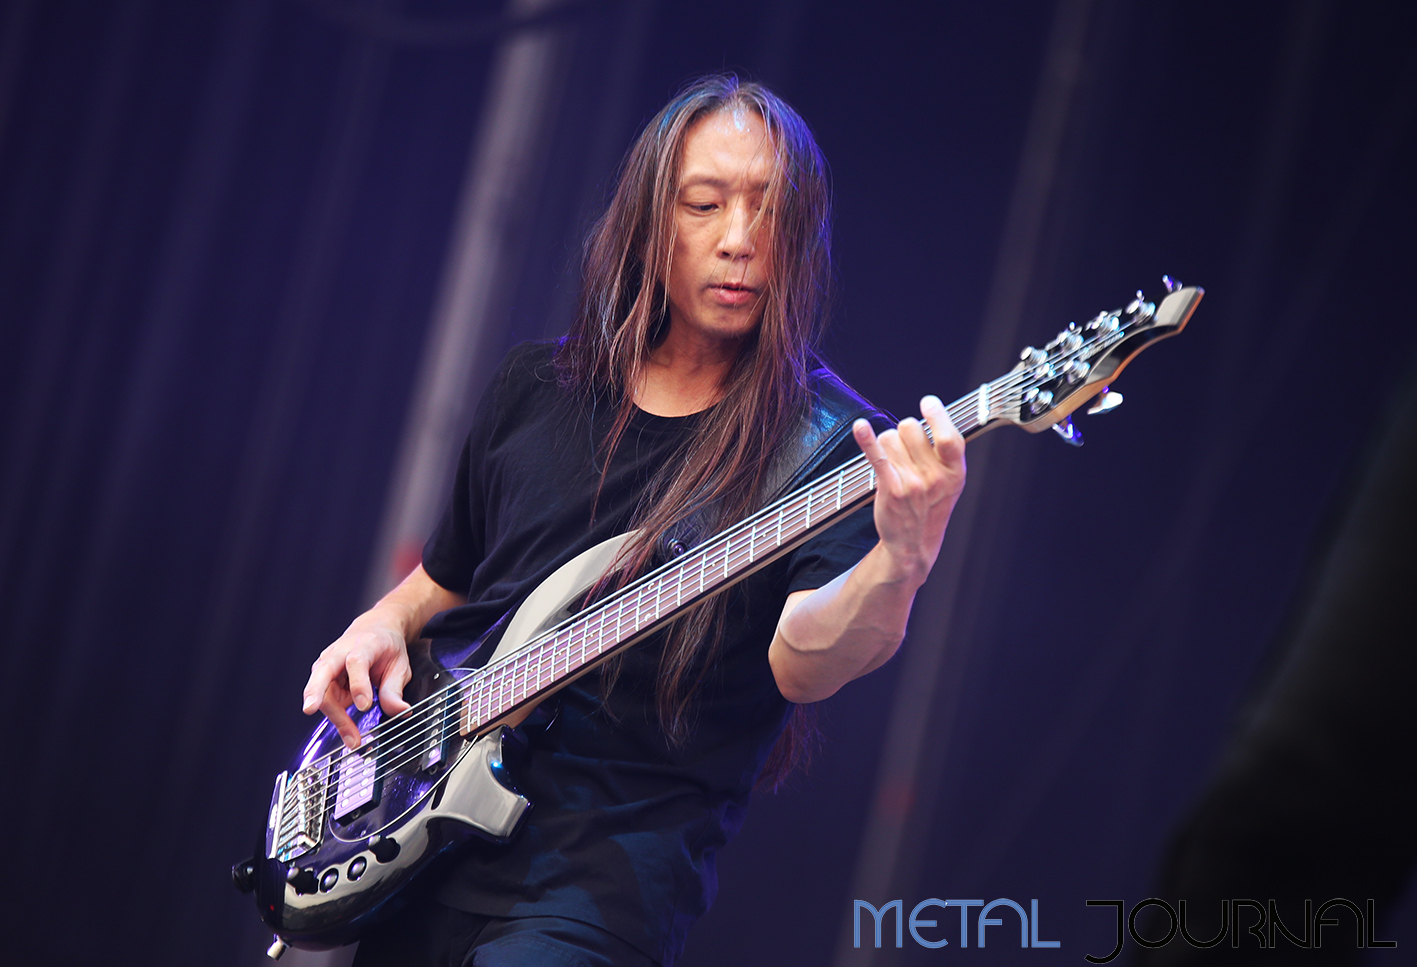 dream theater - metal journal rock fest barcelona 2019 pic 4